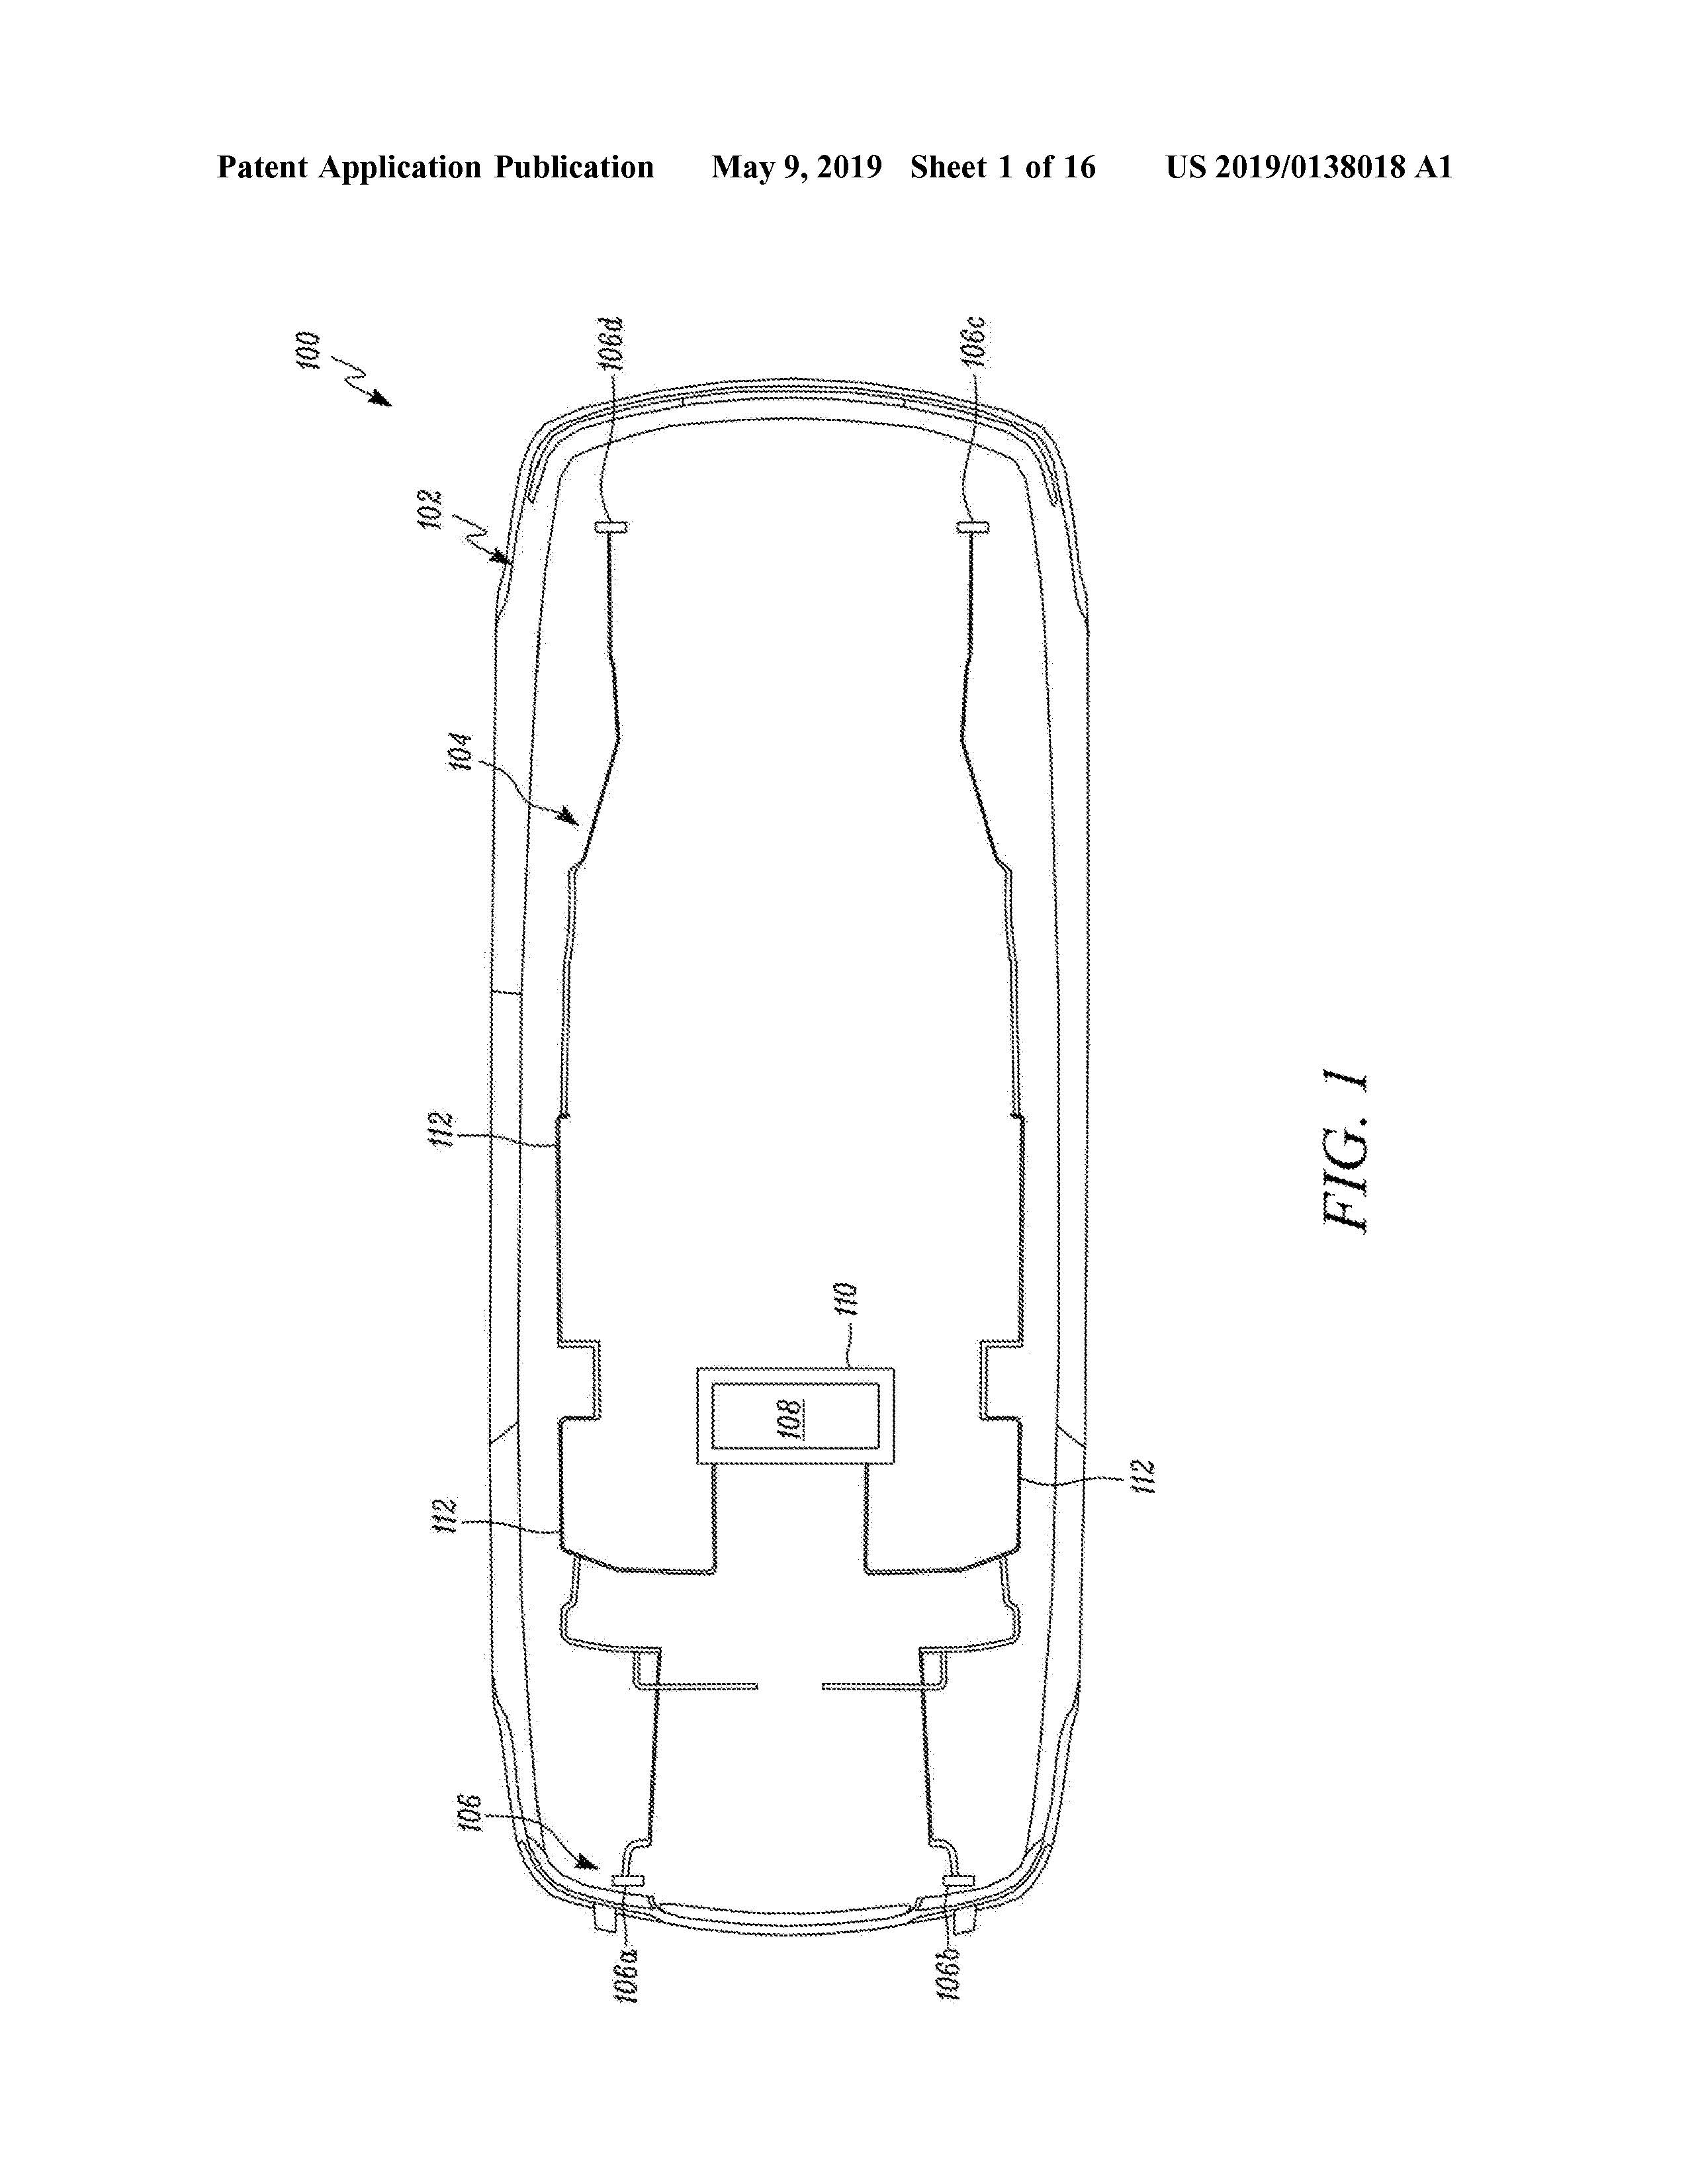 Tesla's self-driving patent application hints at faster collision response